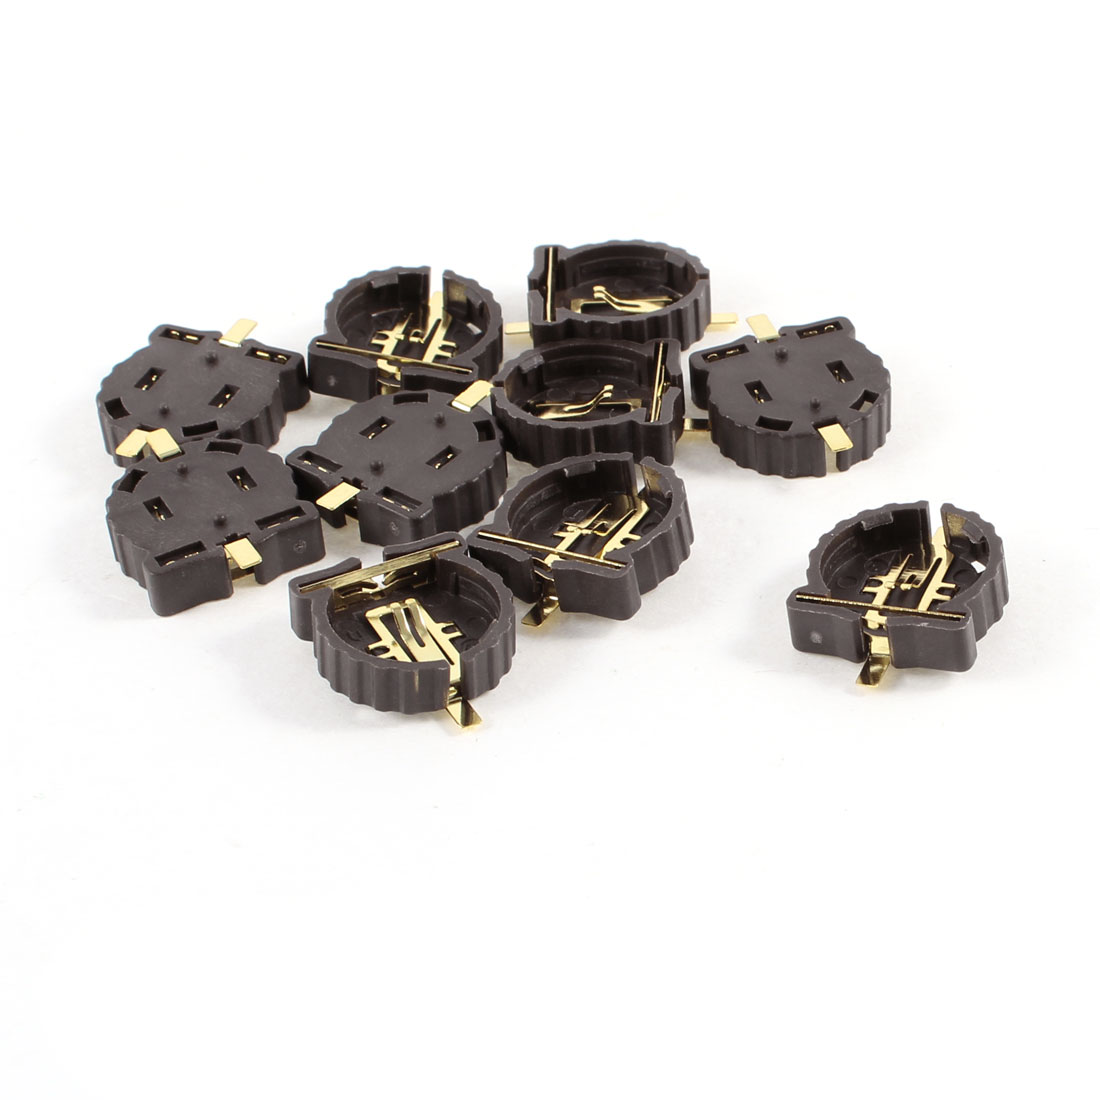 10 Pcs Brown Plastic Housing CR1220 Button Cell Battery Sockets Holder Case